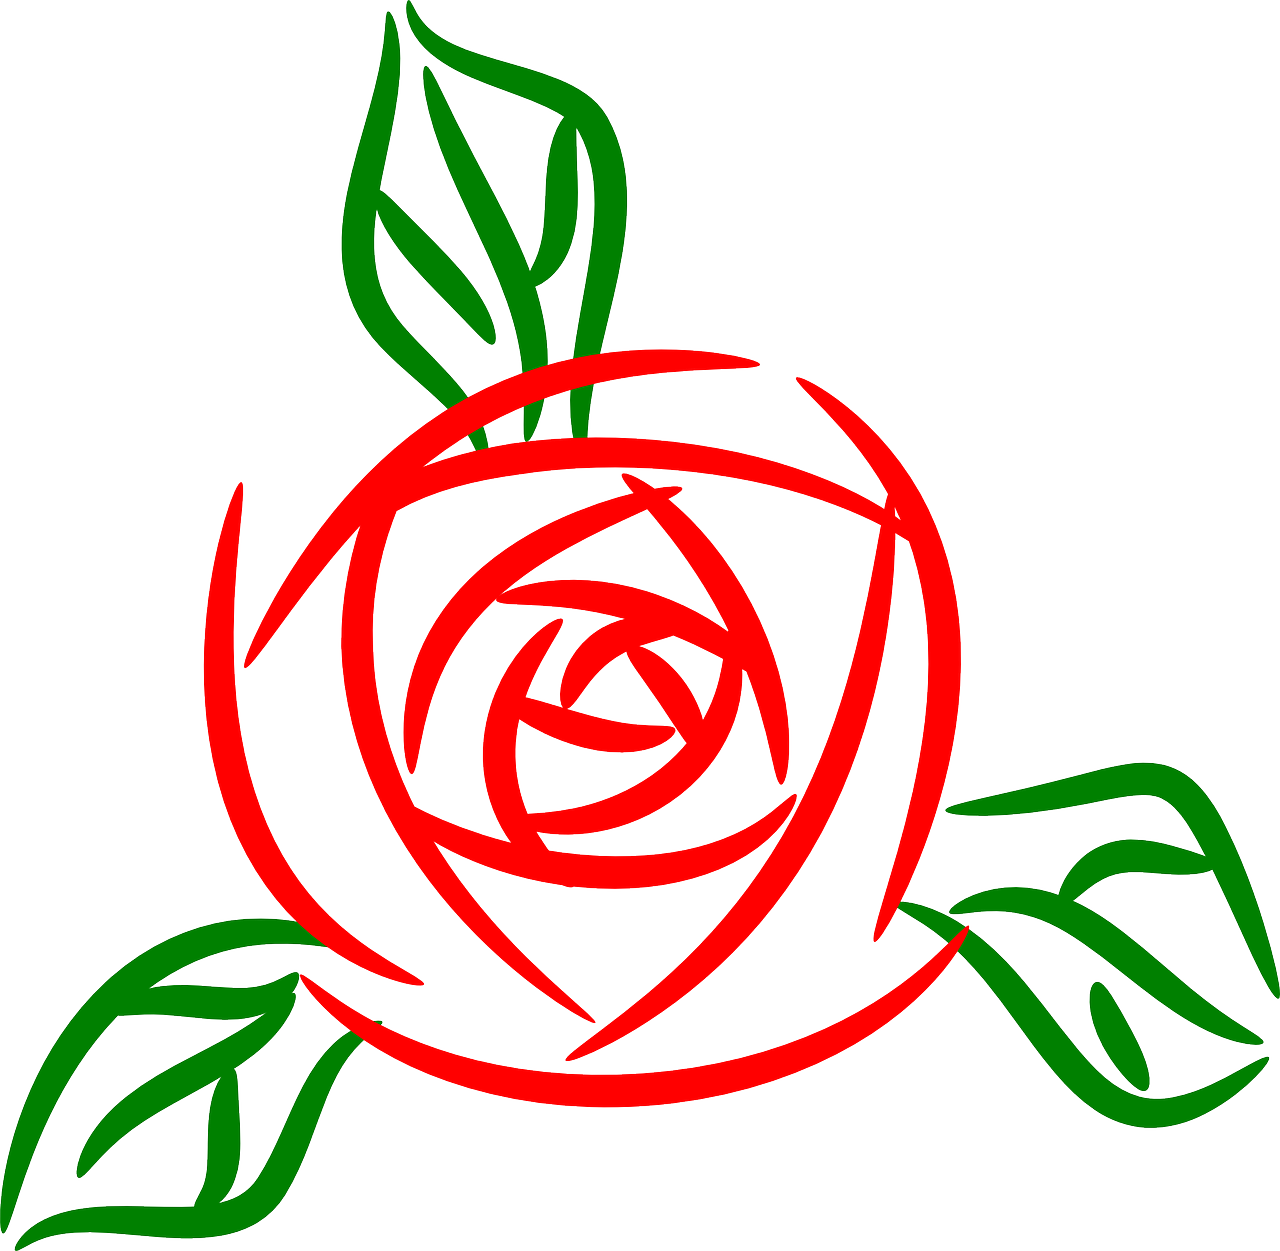 how to draw a simple rose 4